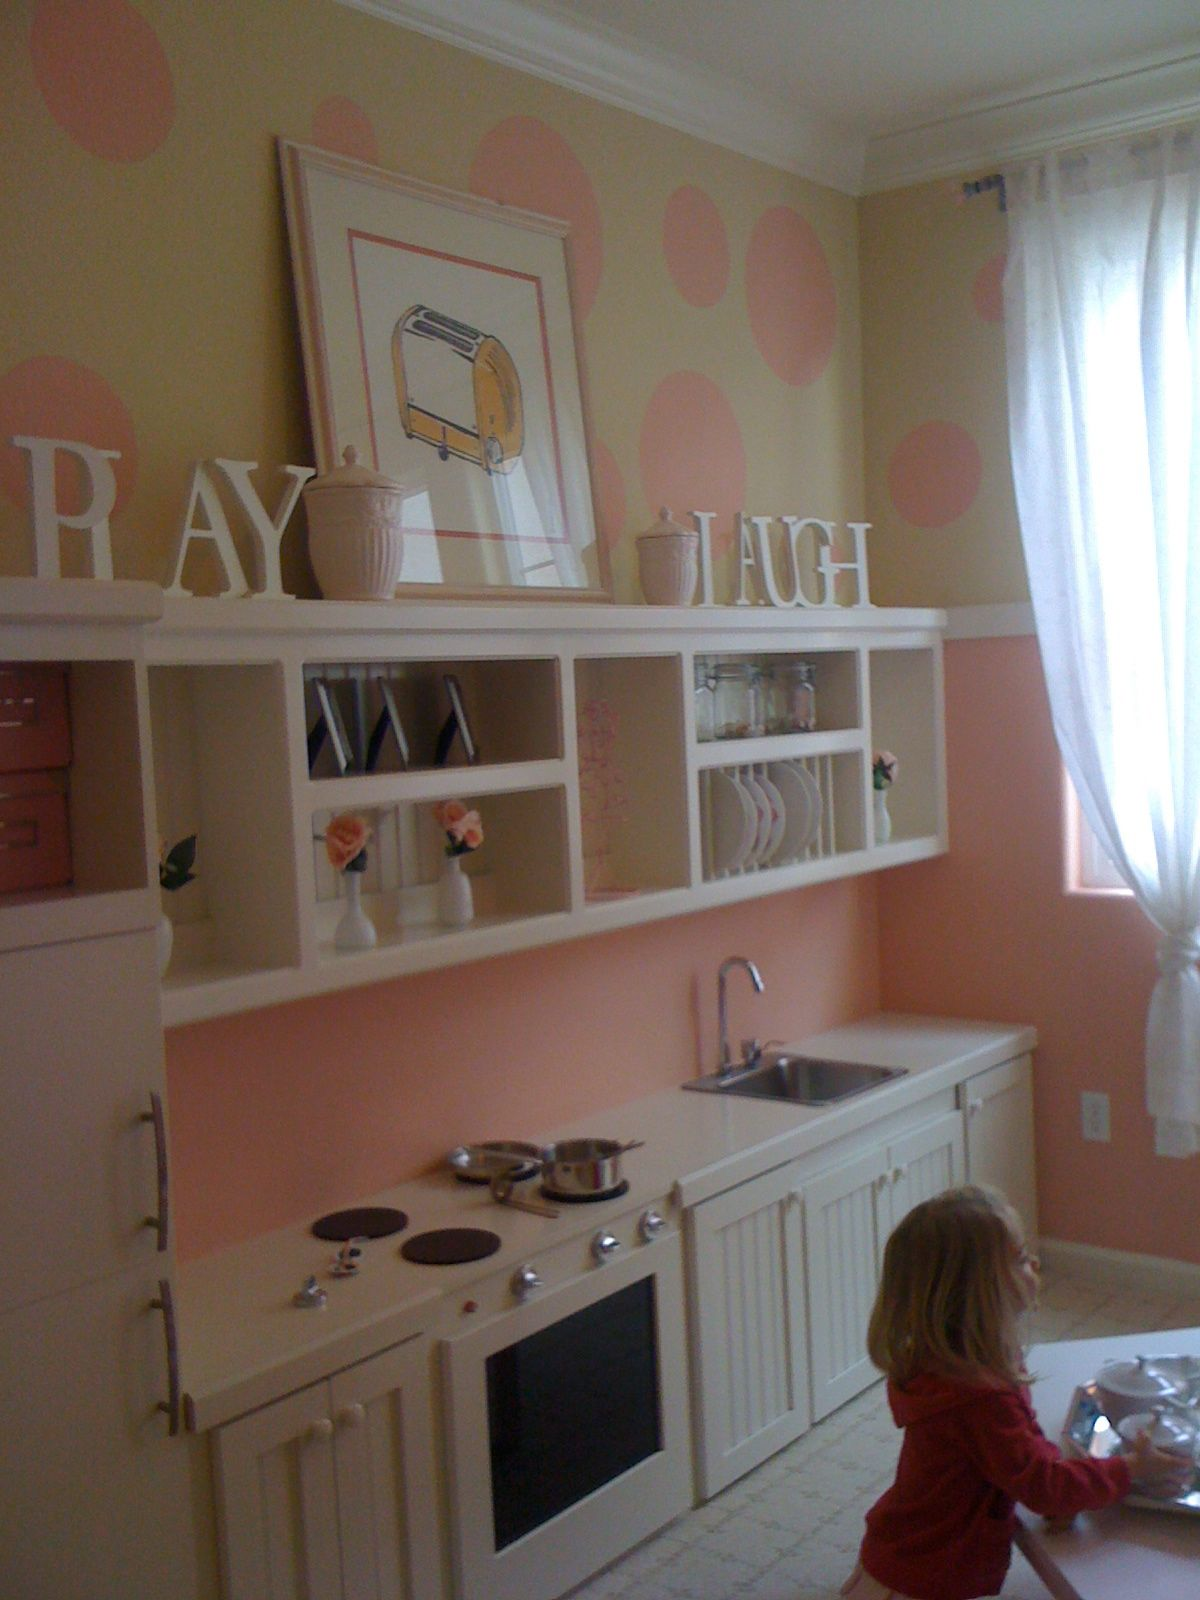 Adorable Play Room But Make It More Neutral For My Boy